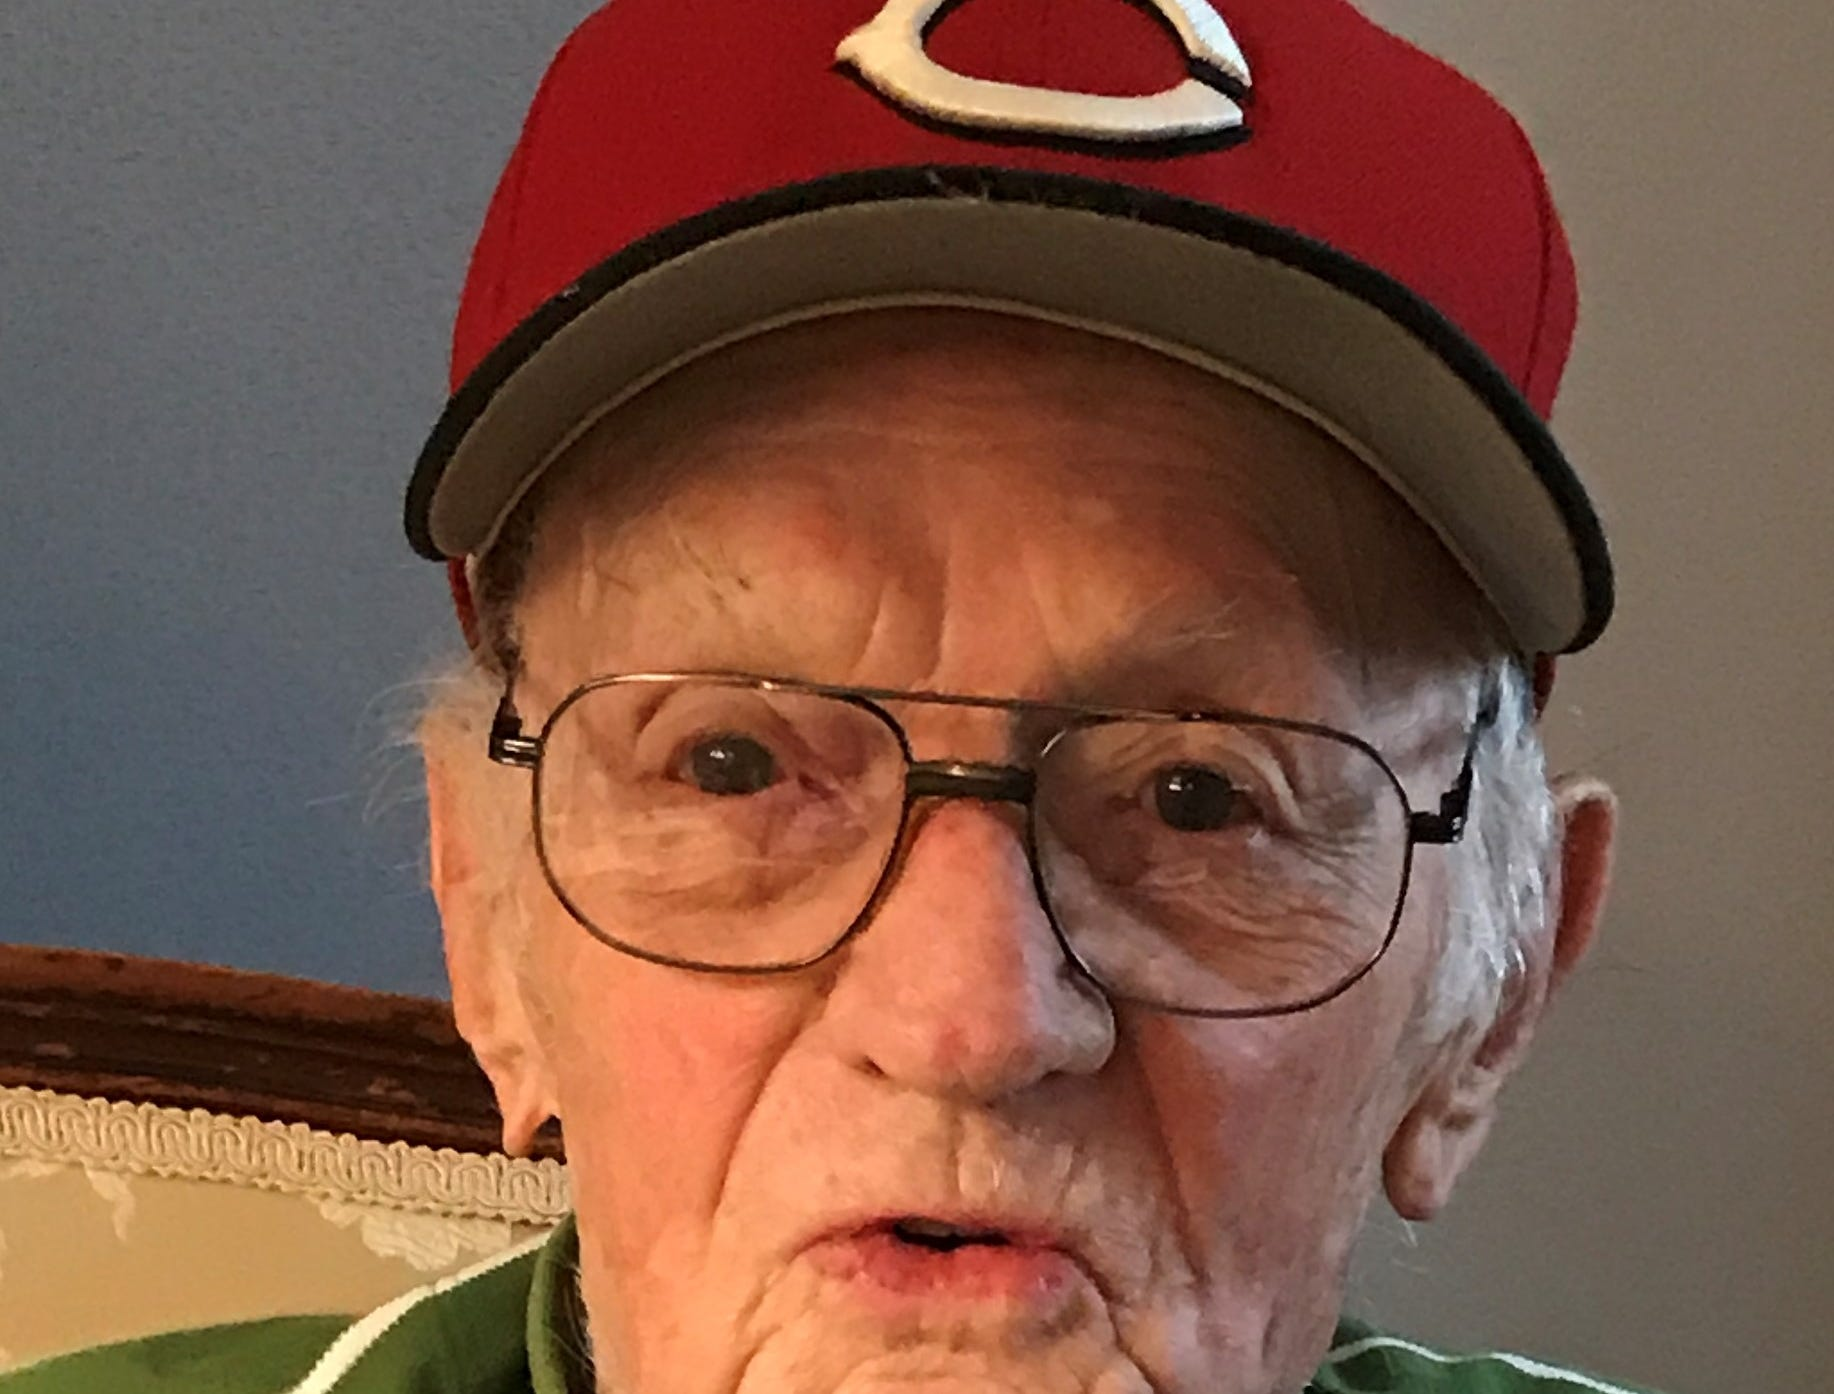 Eugene McDonald became a Cincinnati Reds baseball fan during years living in nearby Lawrenceburg, Indiana.